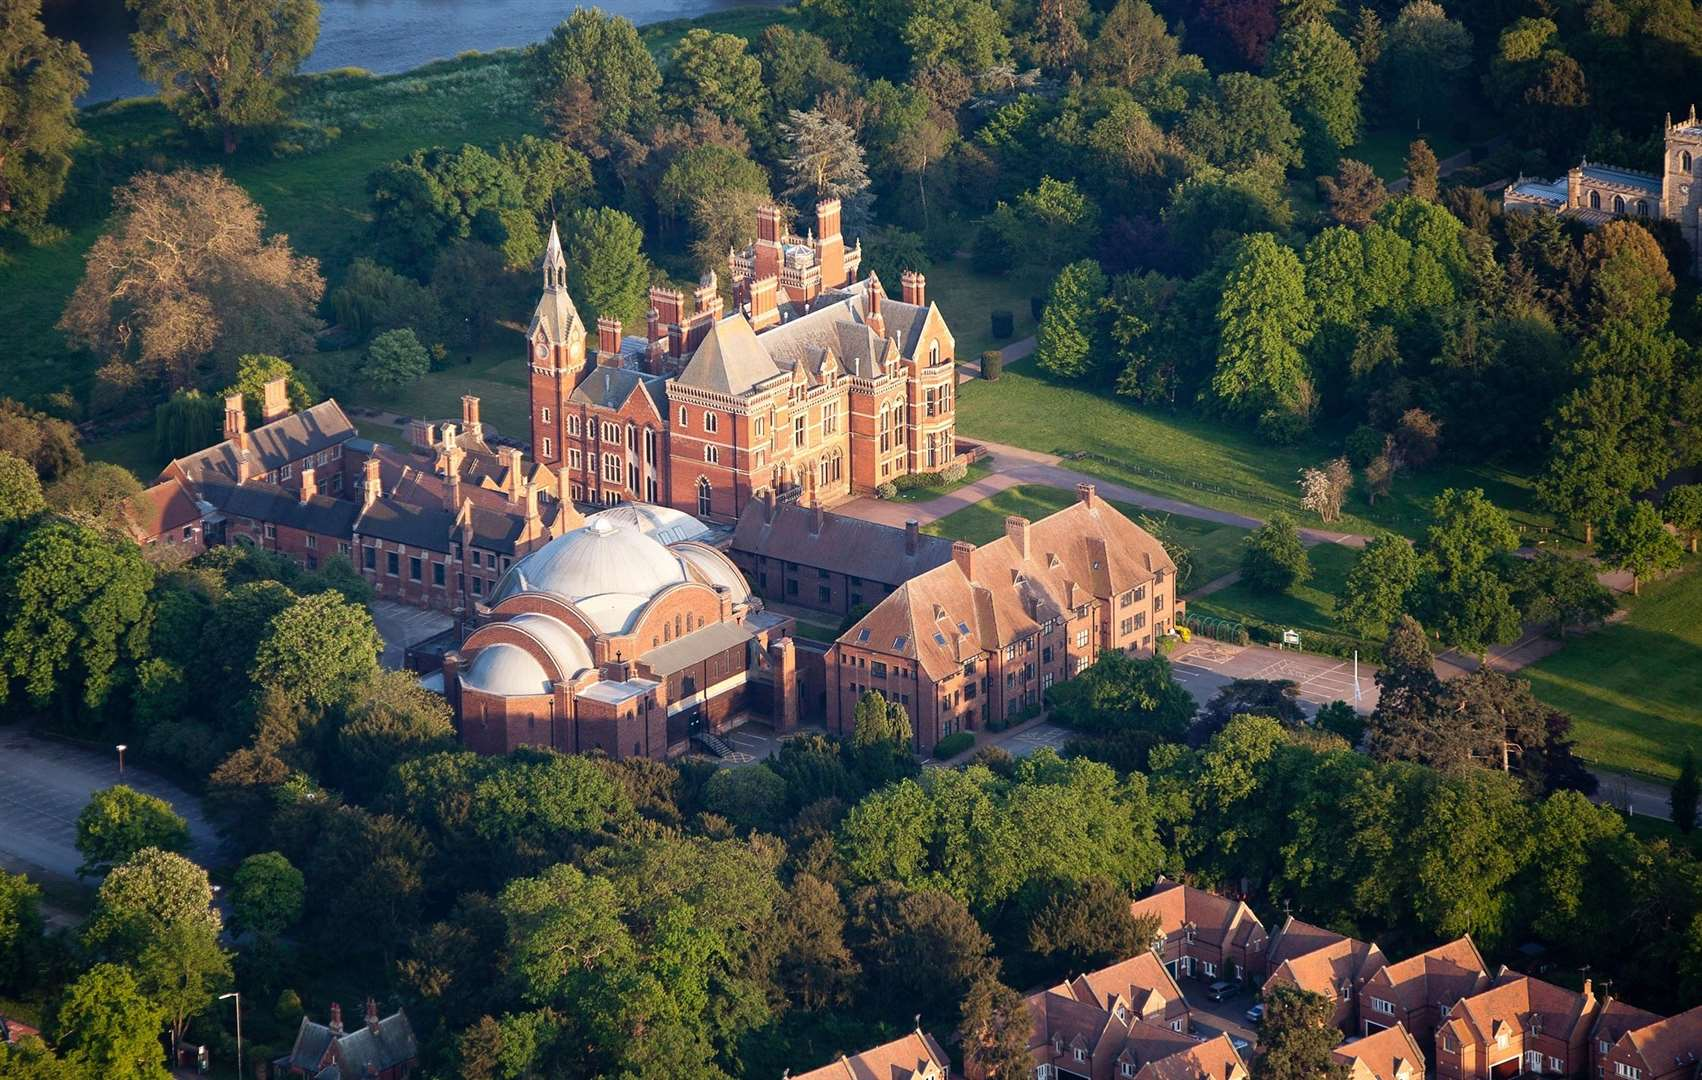 An aerial view of Kelham Hall